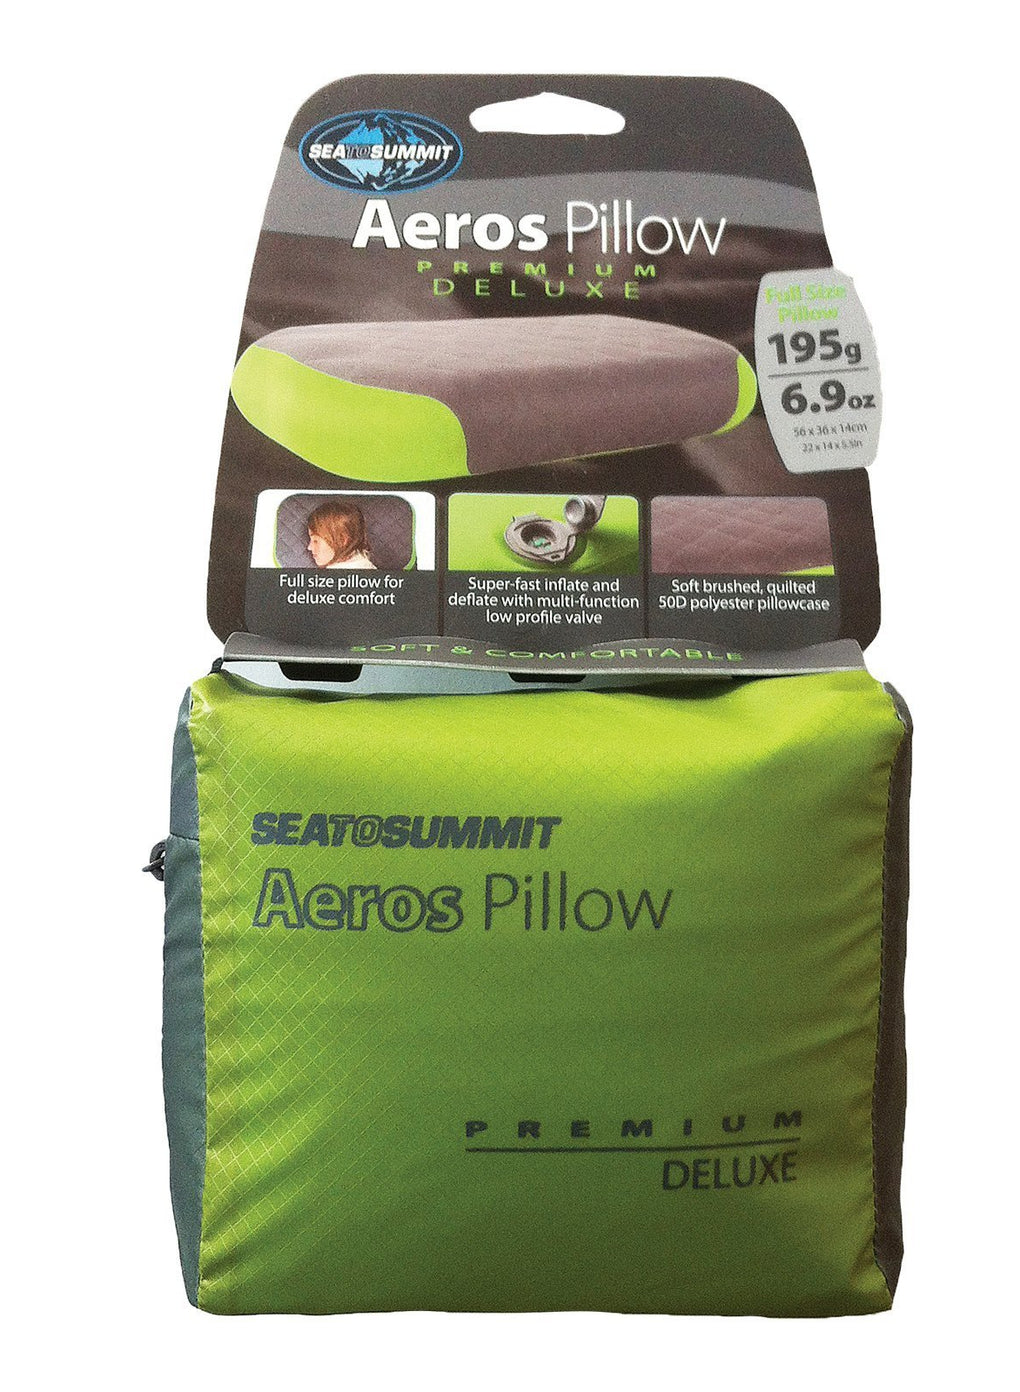 Sea to Summit Aeros Pillow Premium Deluxe